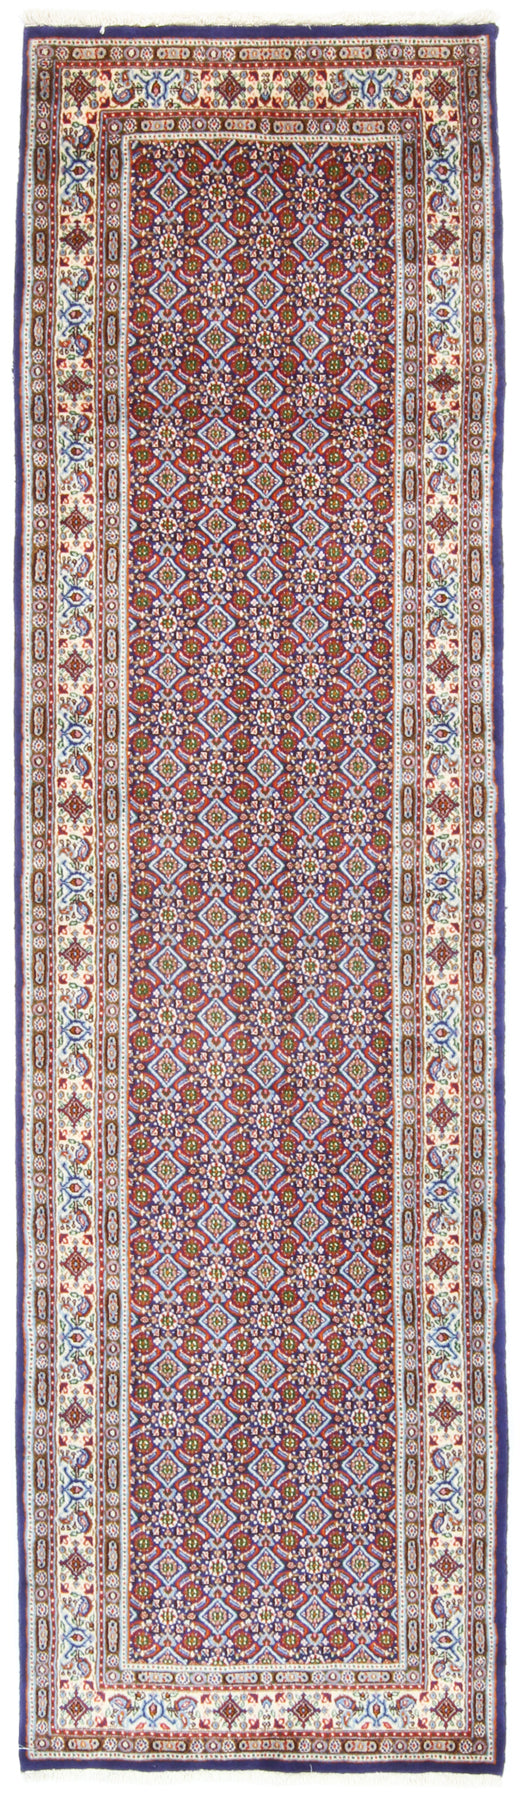 Persian Mood Runner-Turco Persian Rug Company Inc.